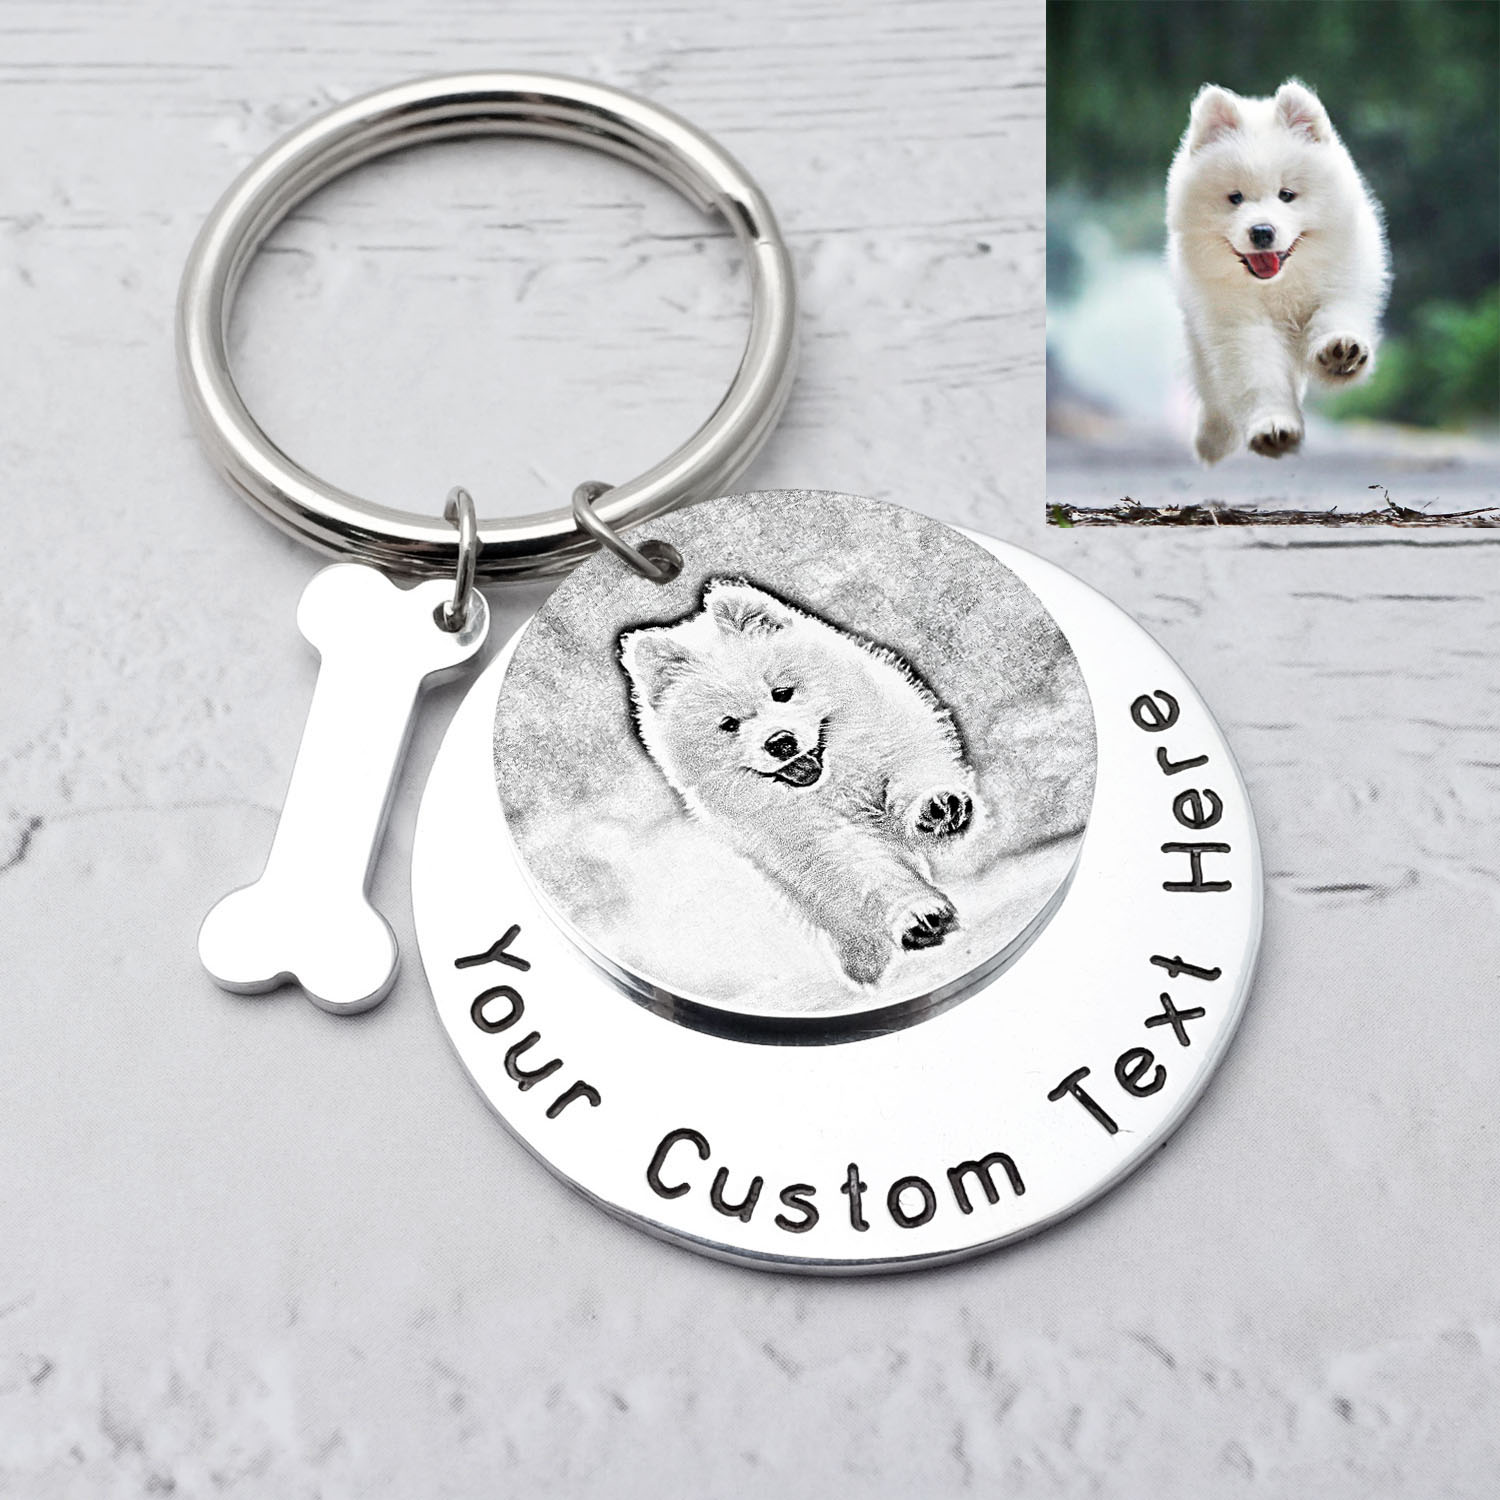 Custom Engraving Keyring With Picture Pet Photo Key Chain Gift Pet Picture ID Tag With Bone Pet Memorial Christmas Gift